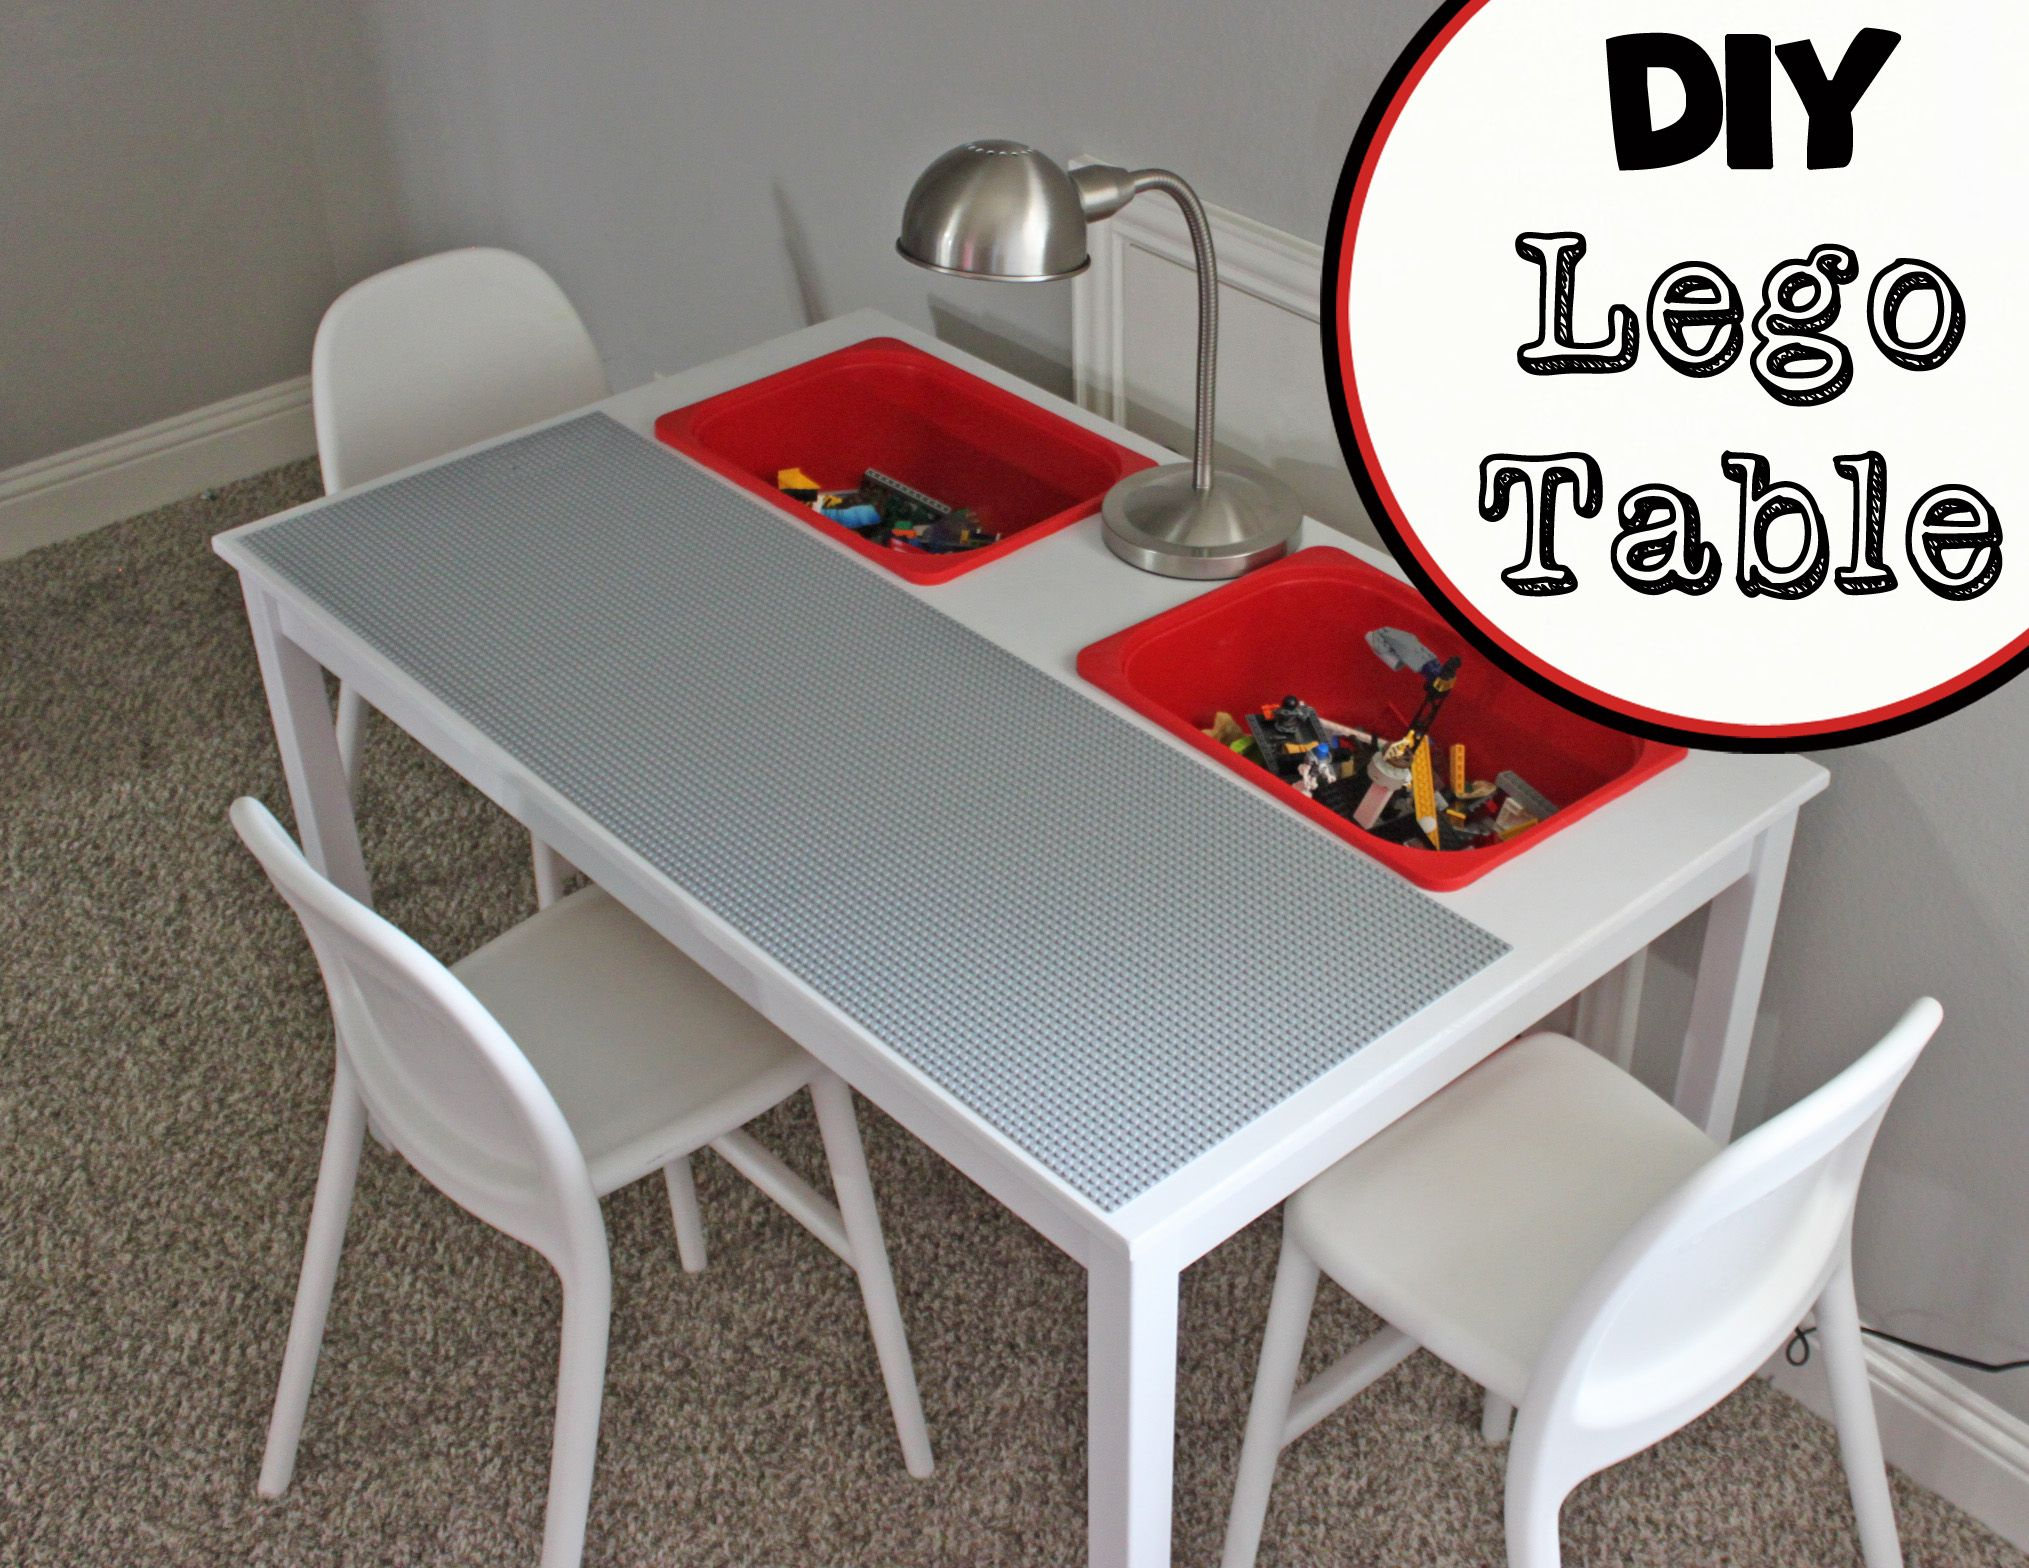 diy lego table all the info to make this table from an ikea dining table